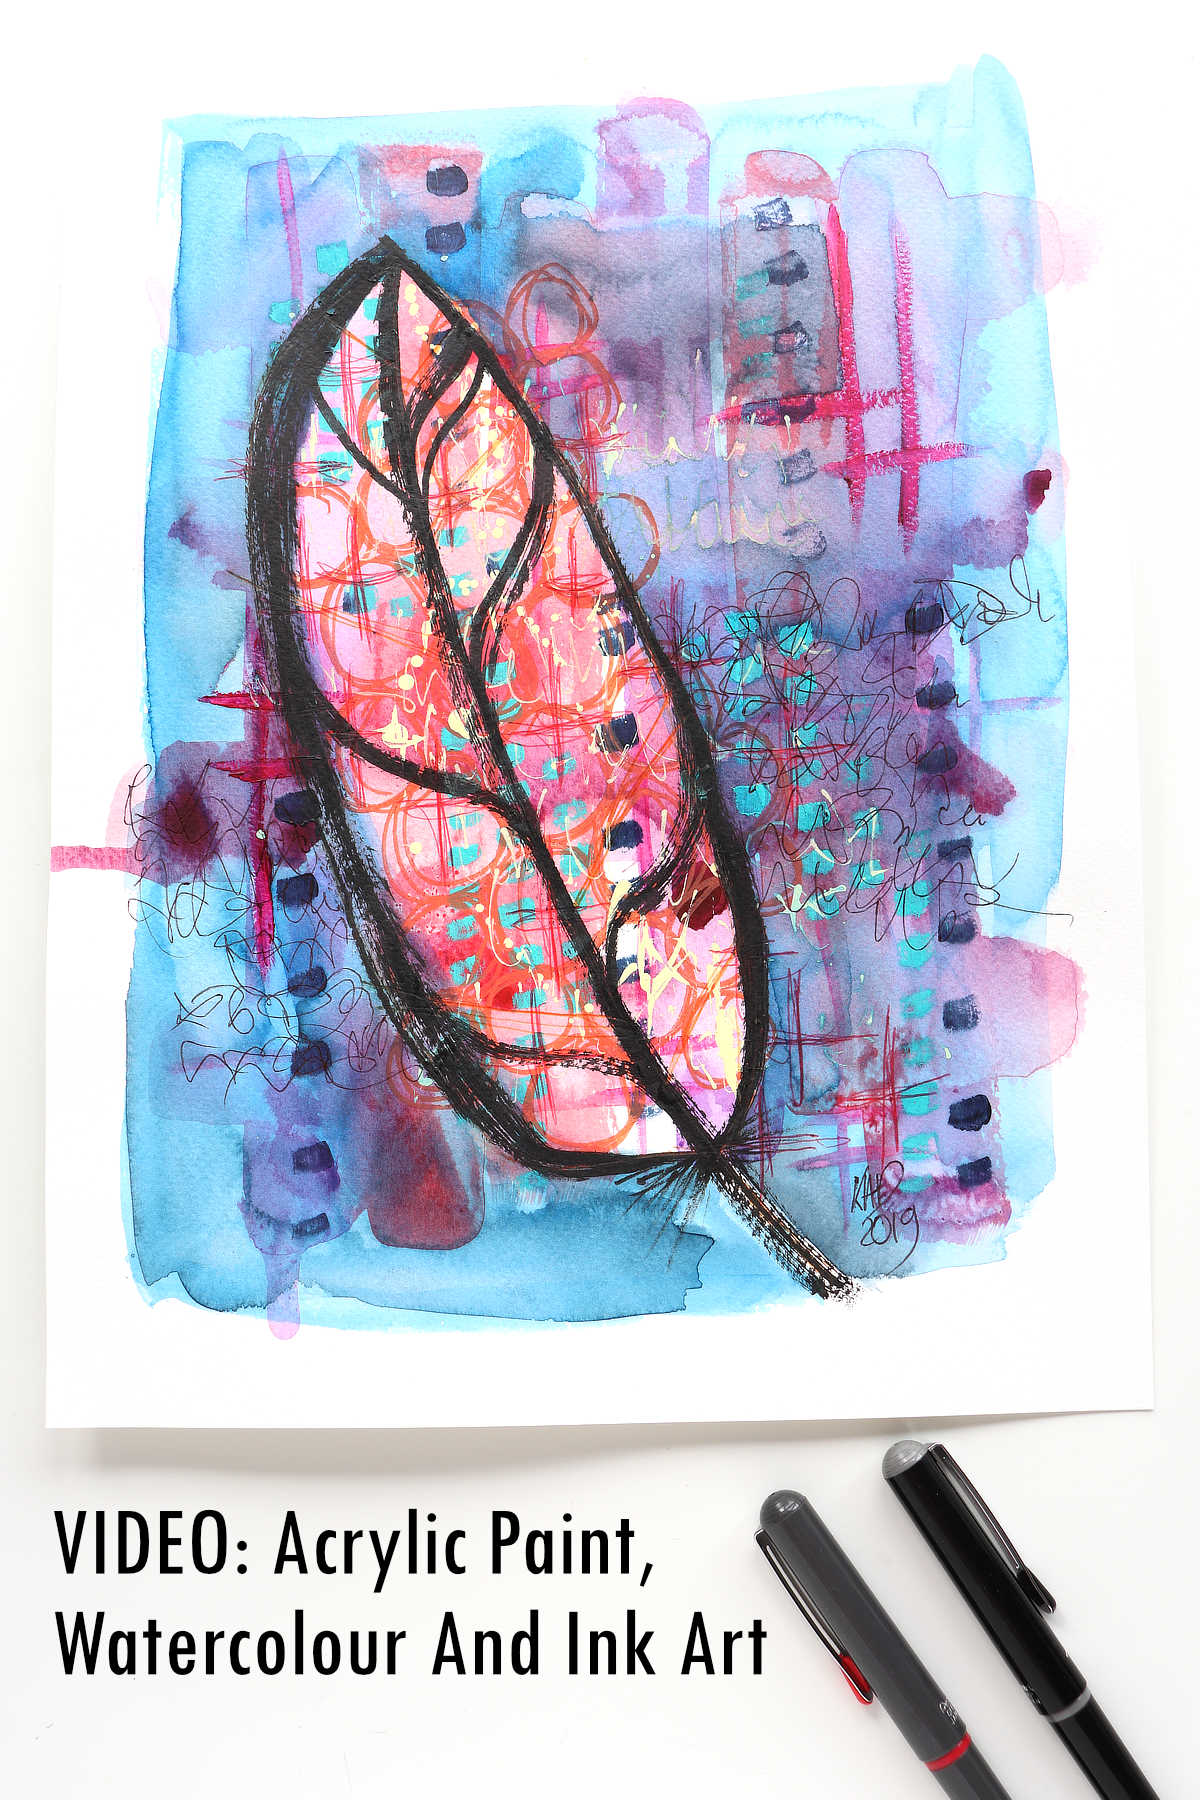 Acrylic Paint, Watercolour And Ink feather by Kim Dellow